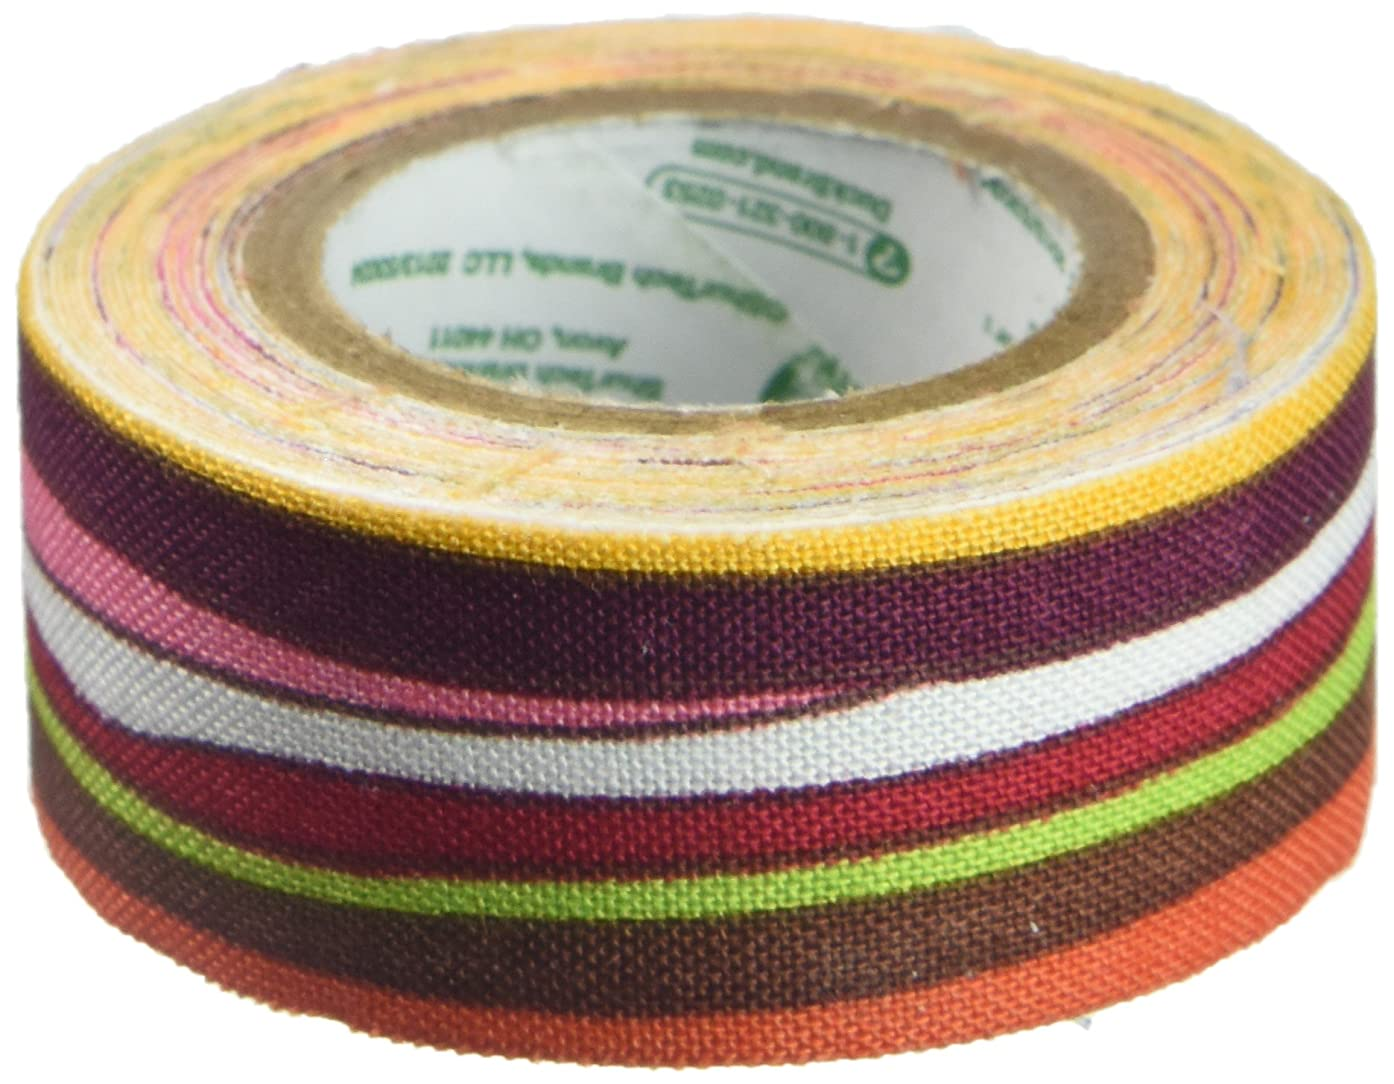 ShurTech FT2-2675 Fabric Tape, 0.75 by 96-Inch, Coral Multi-Stripe